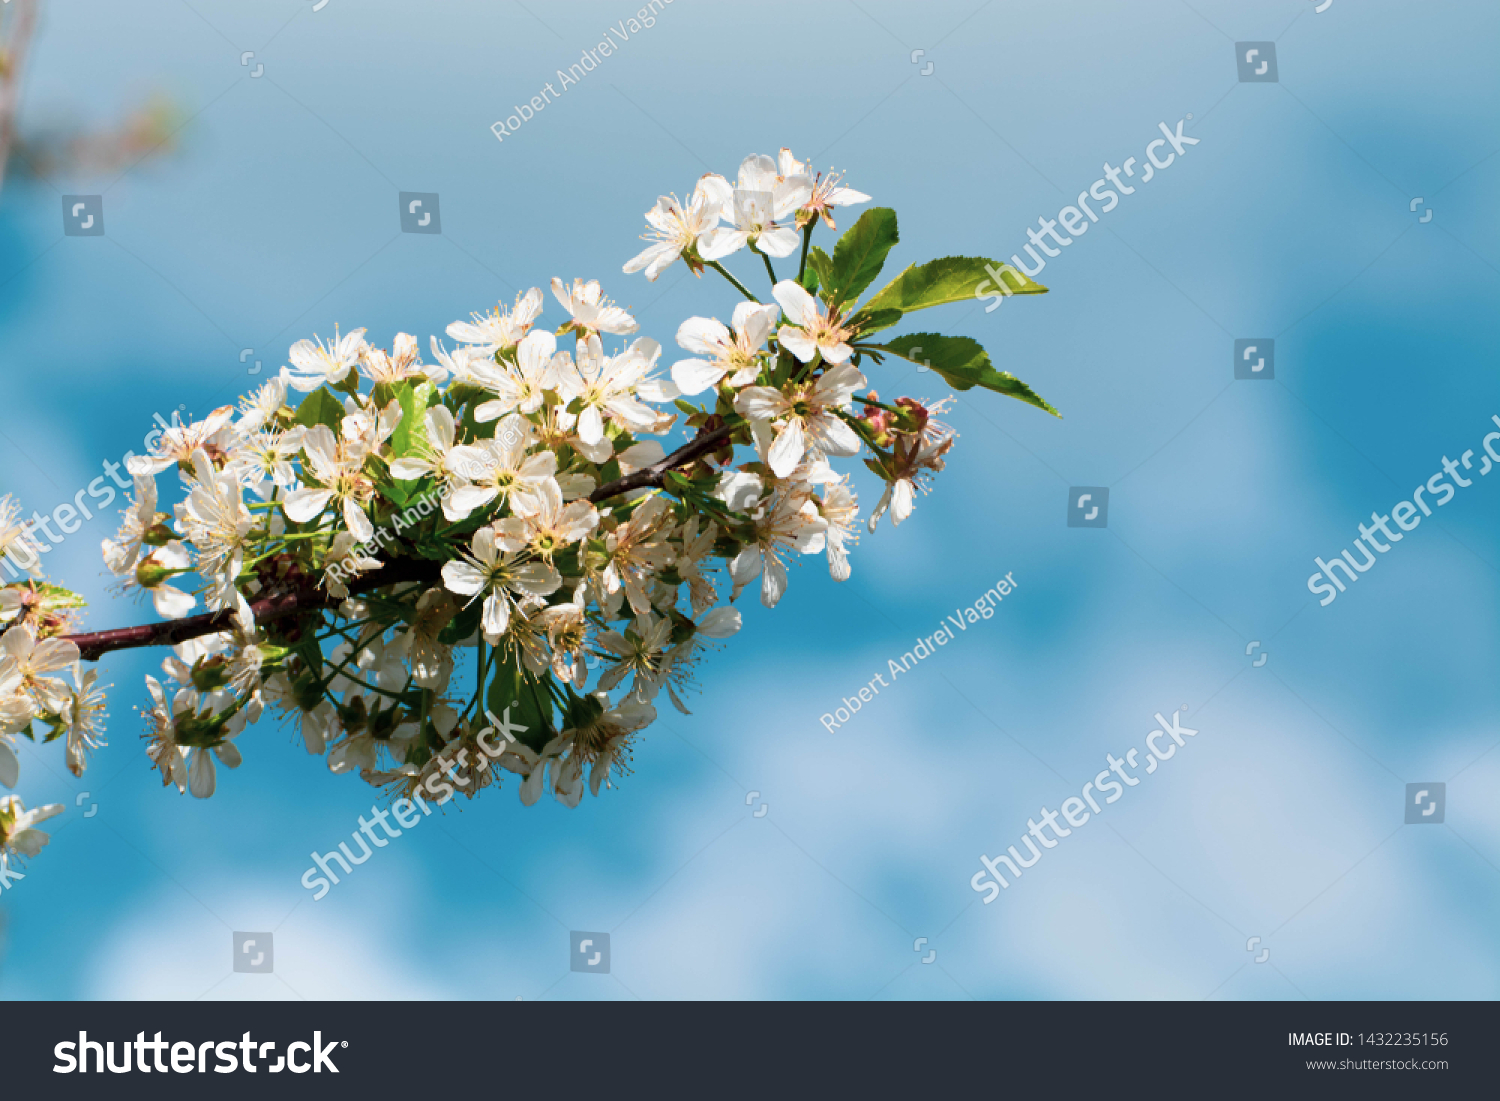 Beauty Nature Floral Desktop Background Blooming Stock Photo Edit